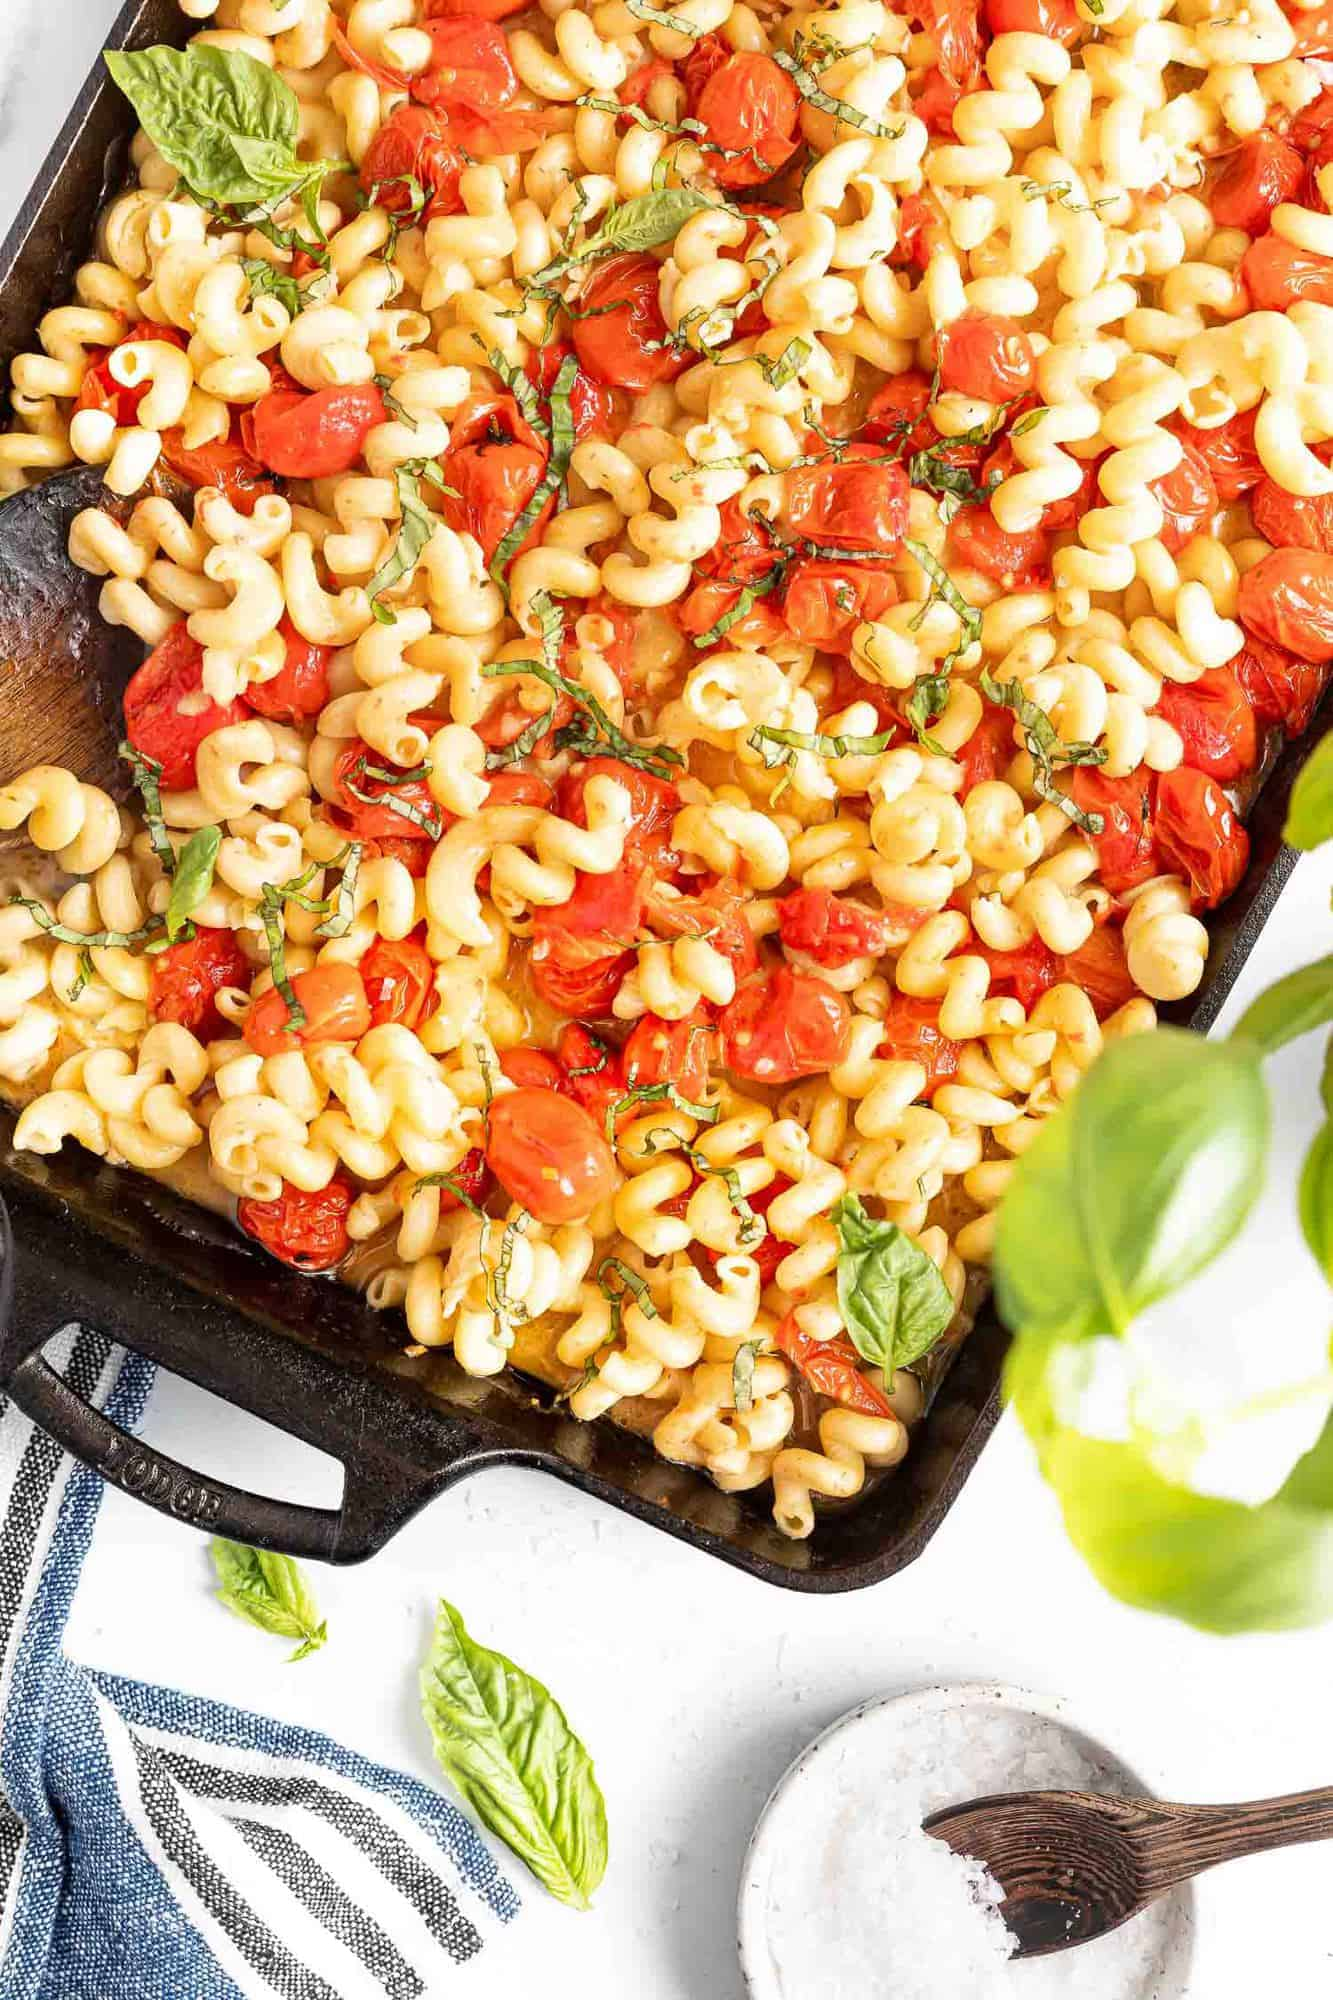 Black baking dish filled with pasta, tomatoes, and basil.